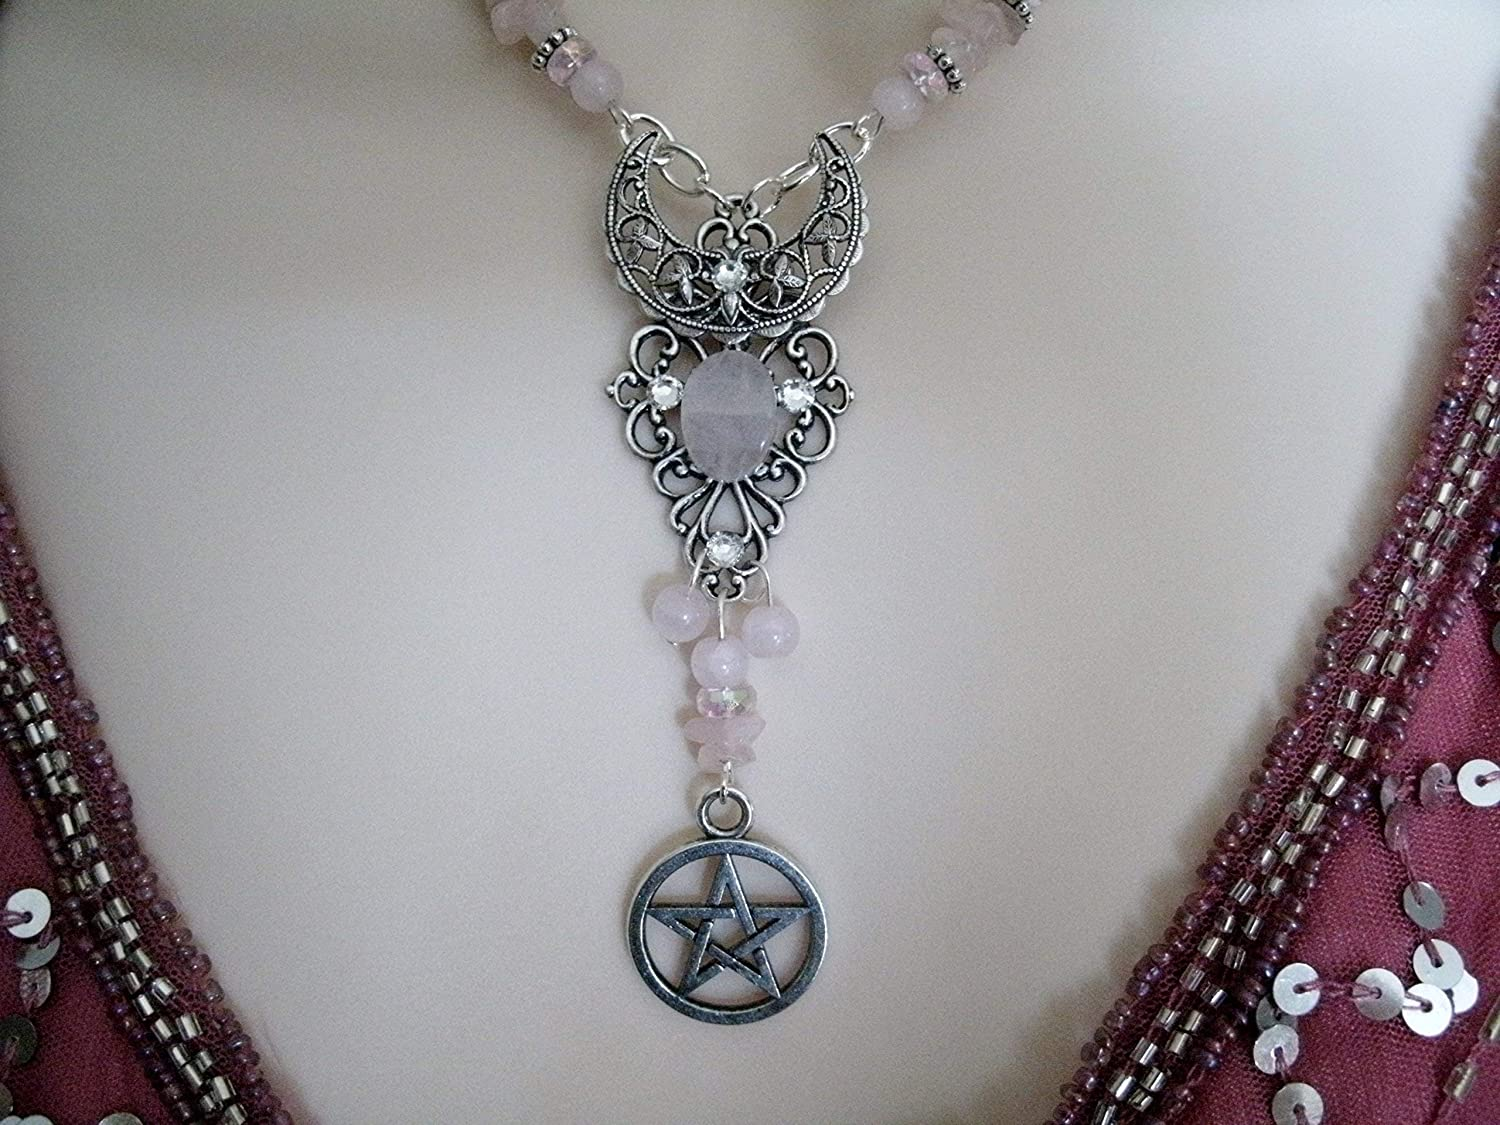 Rose Quartz Crescent Moon Pentacle Necklace pagan witchcraft wiccan pentagram handmade jewelry witch wicca metaphysical magic